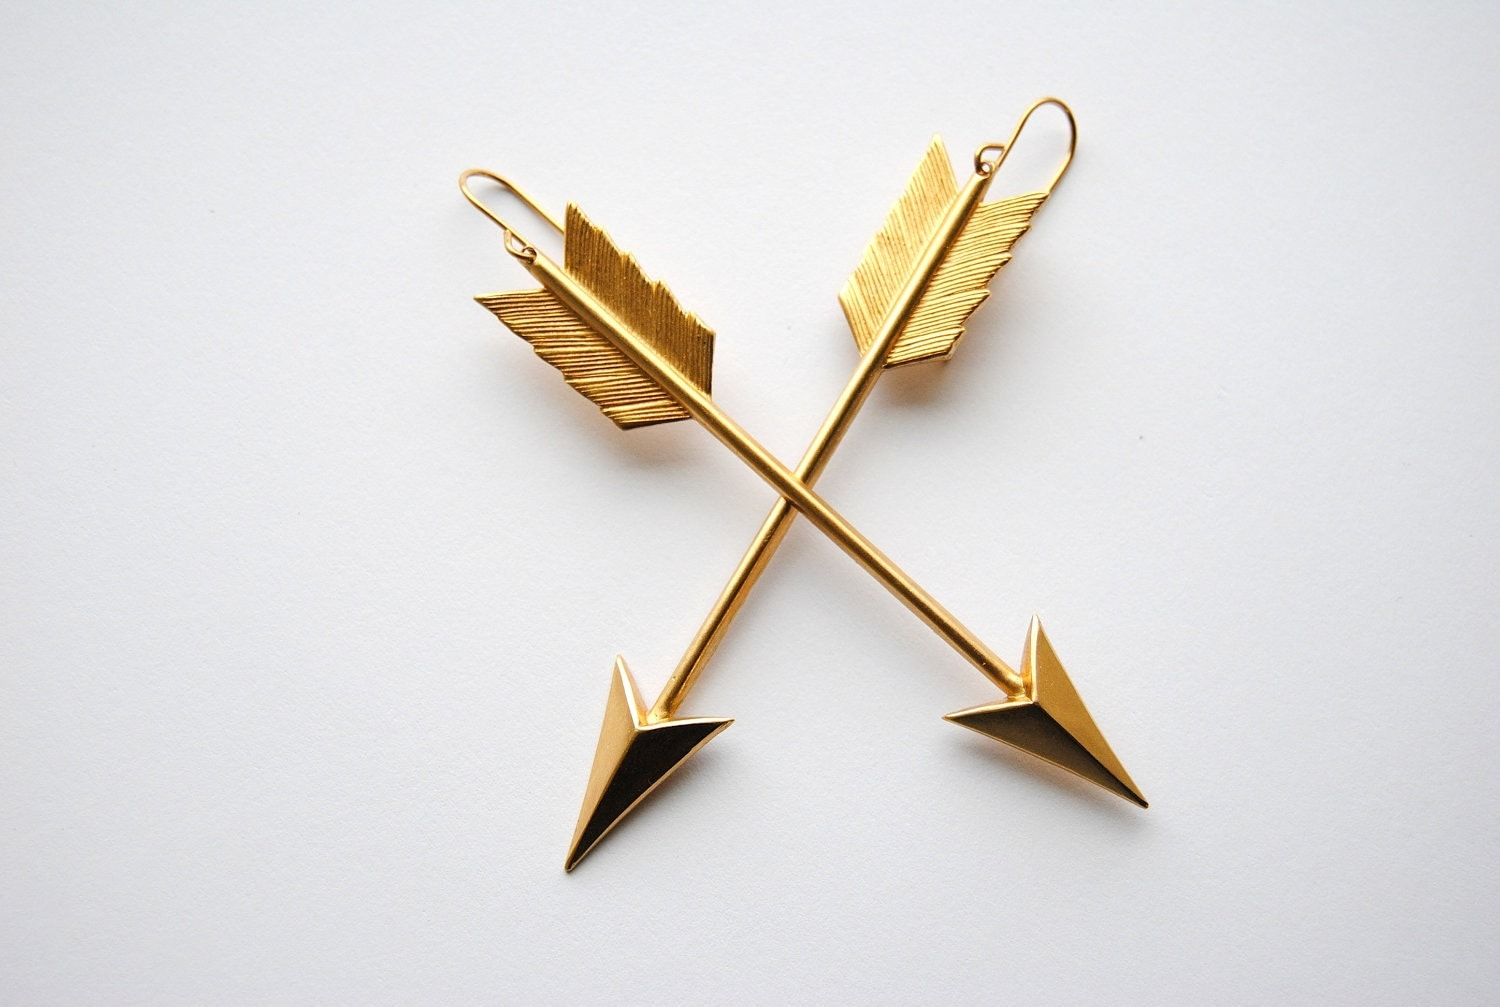 Arrow Earrings - Summer Fashion - Graduation - Hunger Games Jewelry - Free Shipping in the US